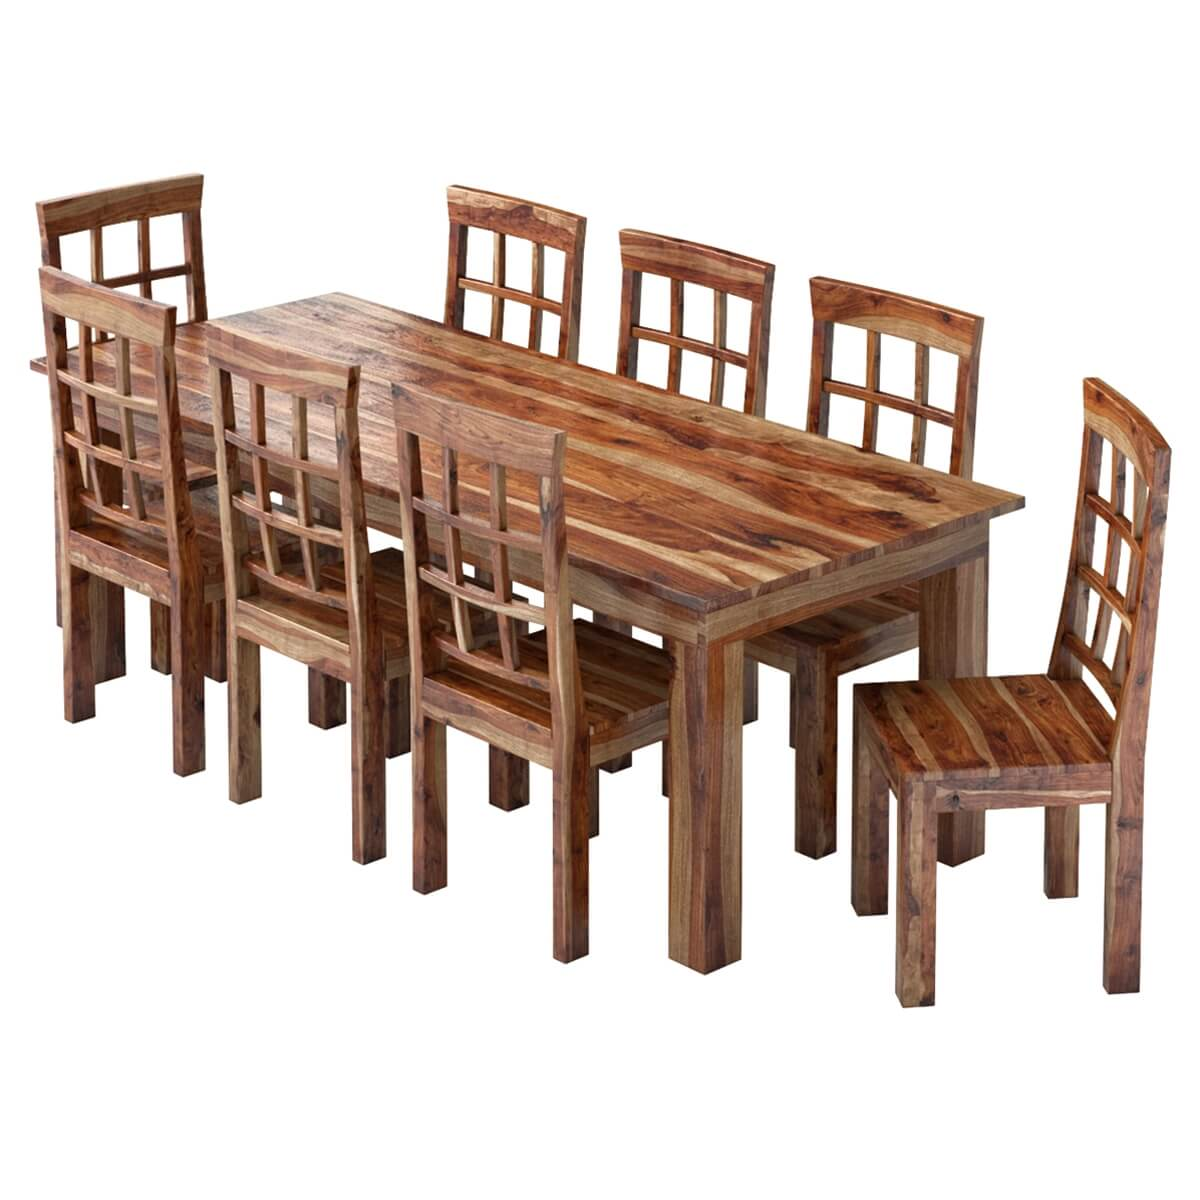 portland handcrafted rustic solid wood 11 piece dining rustic dining table and chair sets sierra living concepts